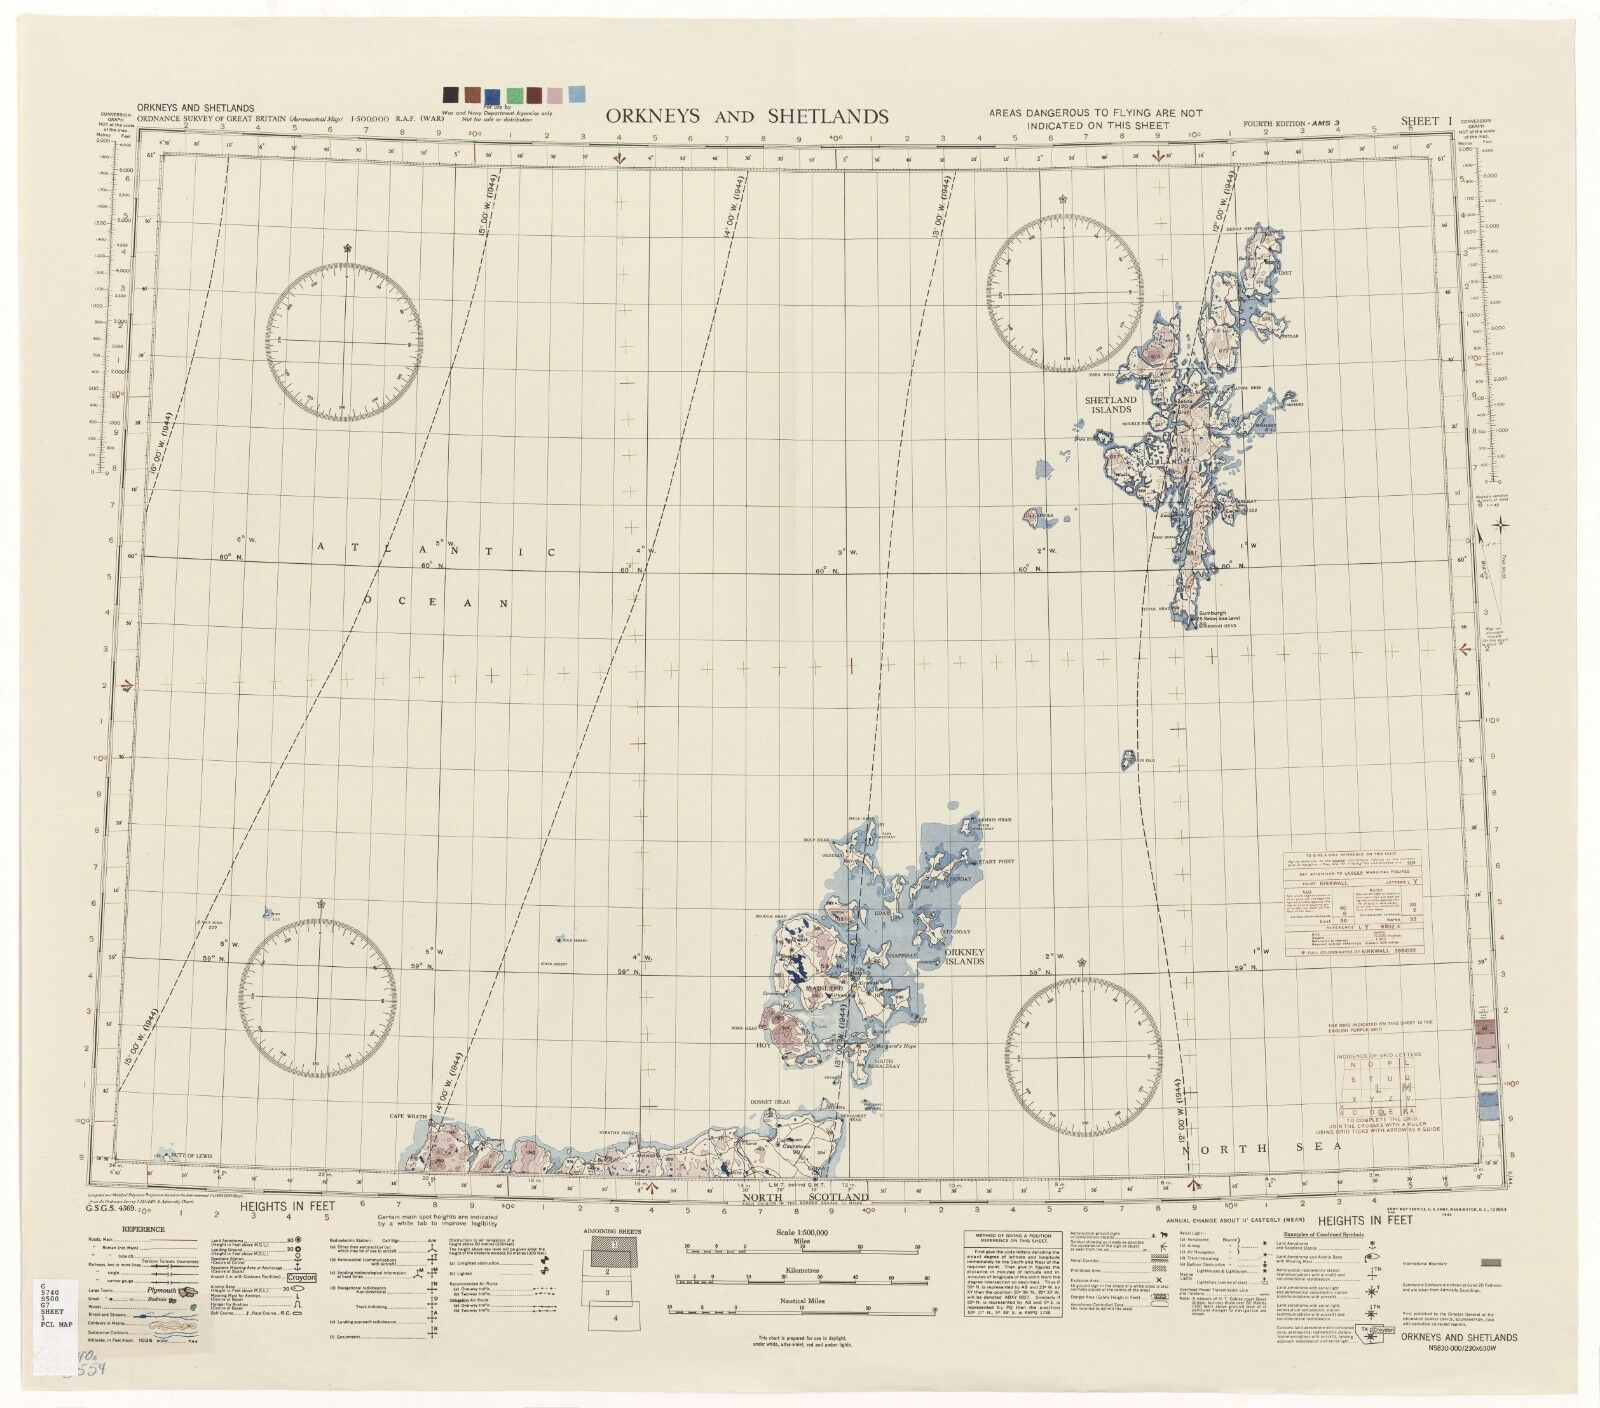 WW2 RAF MAP OF ORKNEYS AND SHETLANDS PRINT